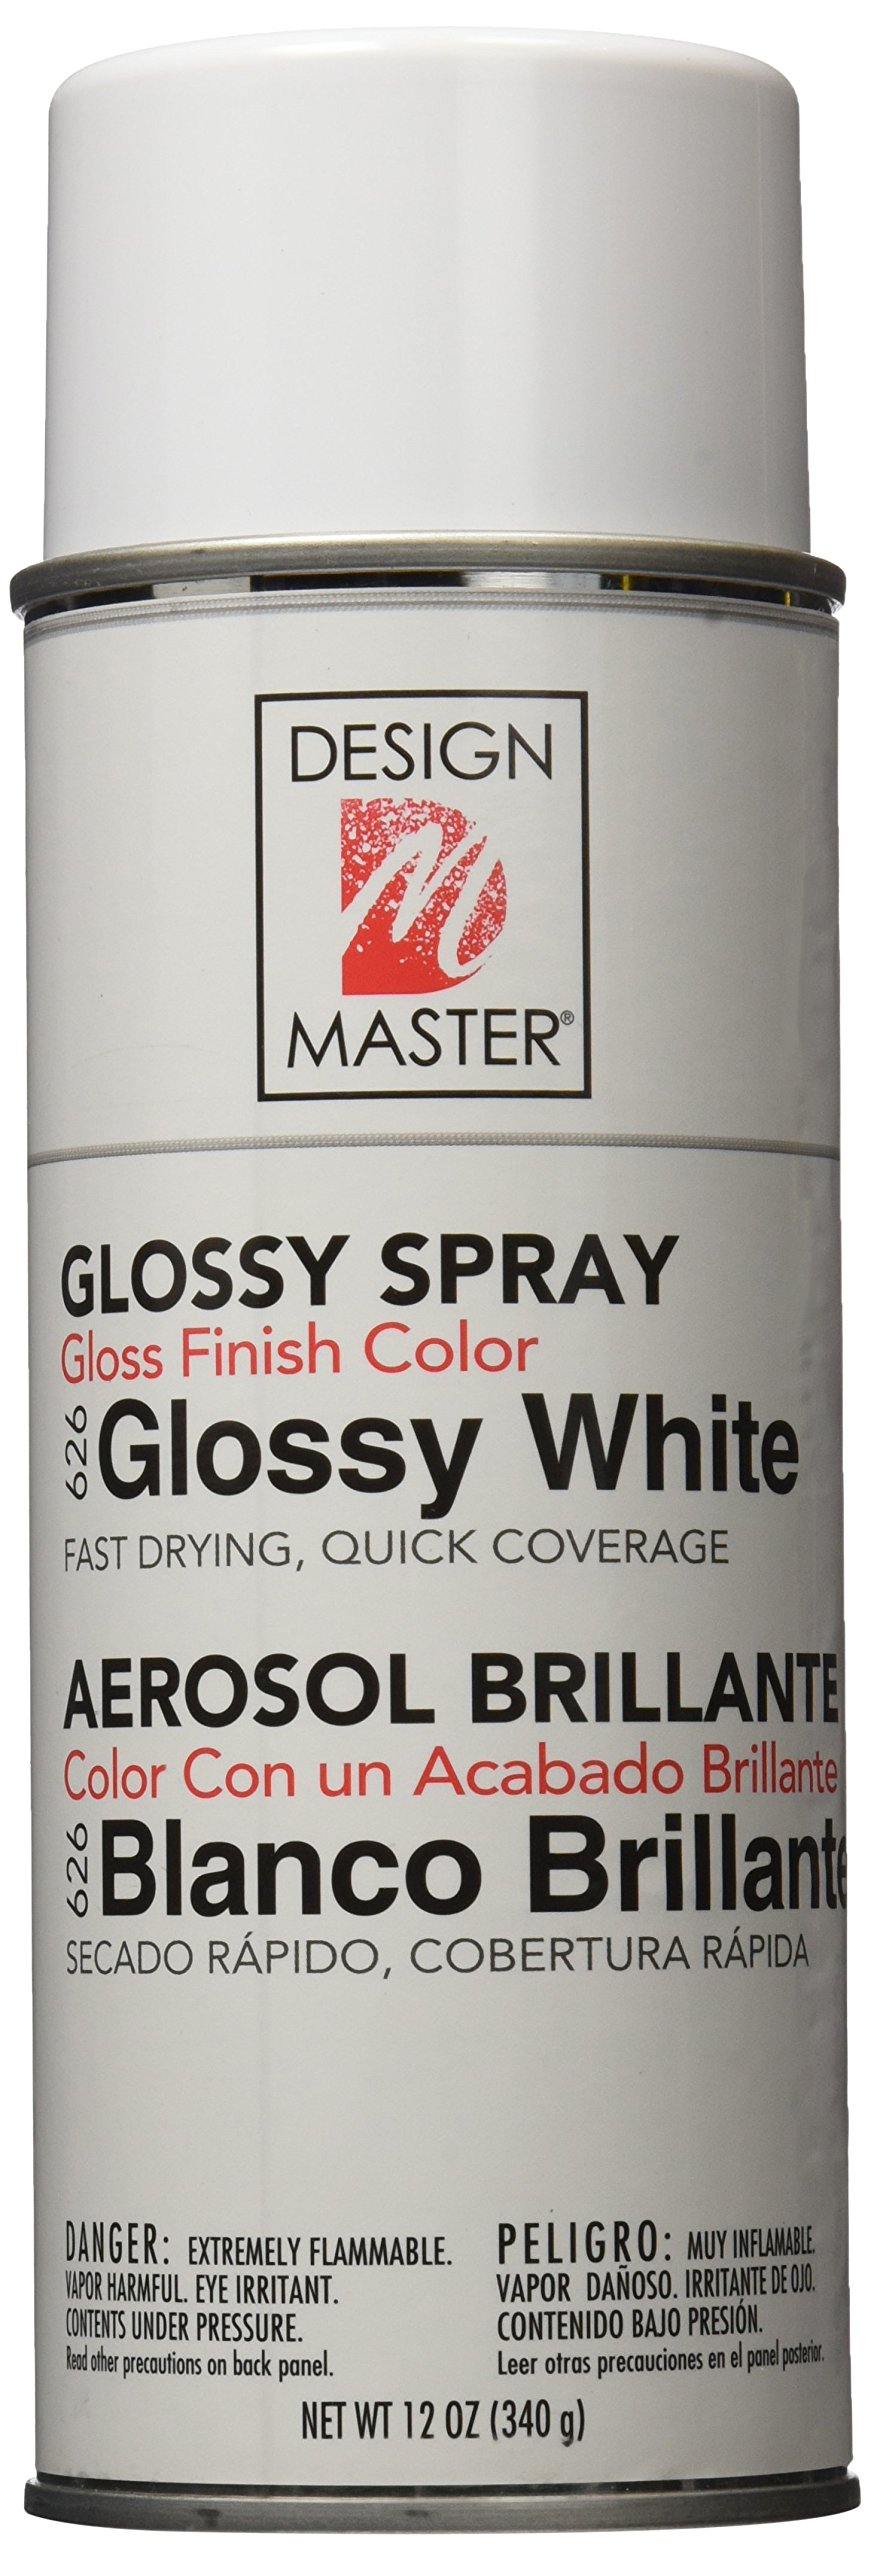 Design Master Colortool Floral Spray Paint 12 Ounces-Glossy White